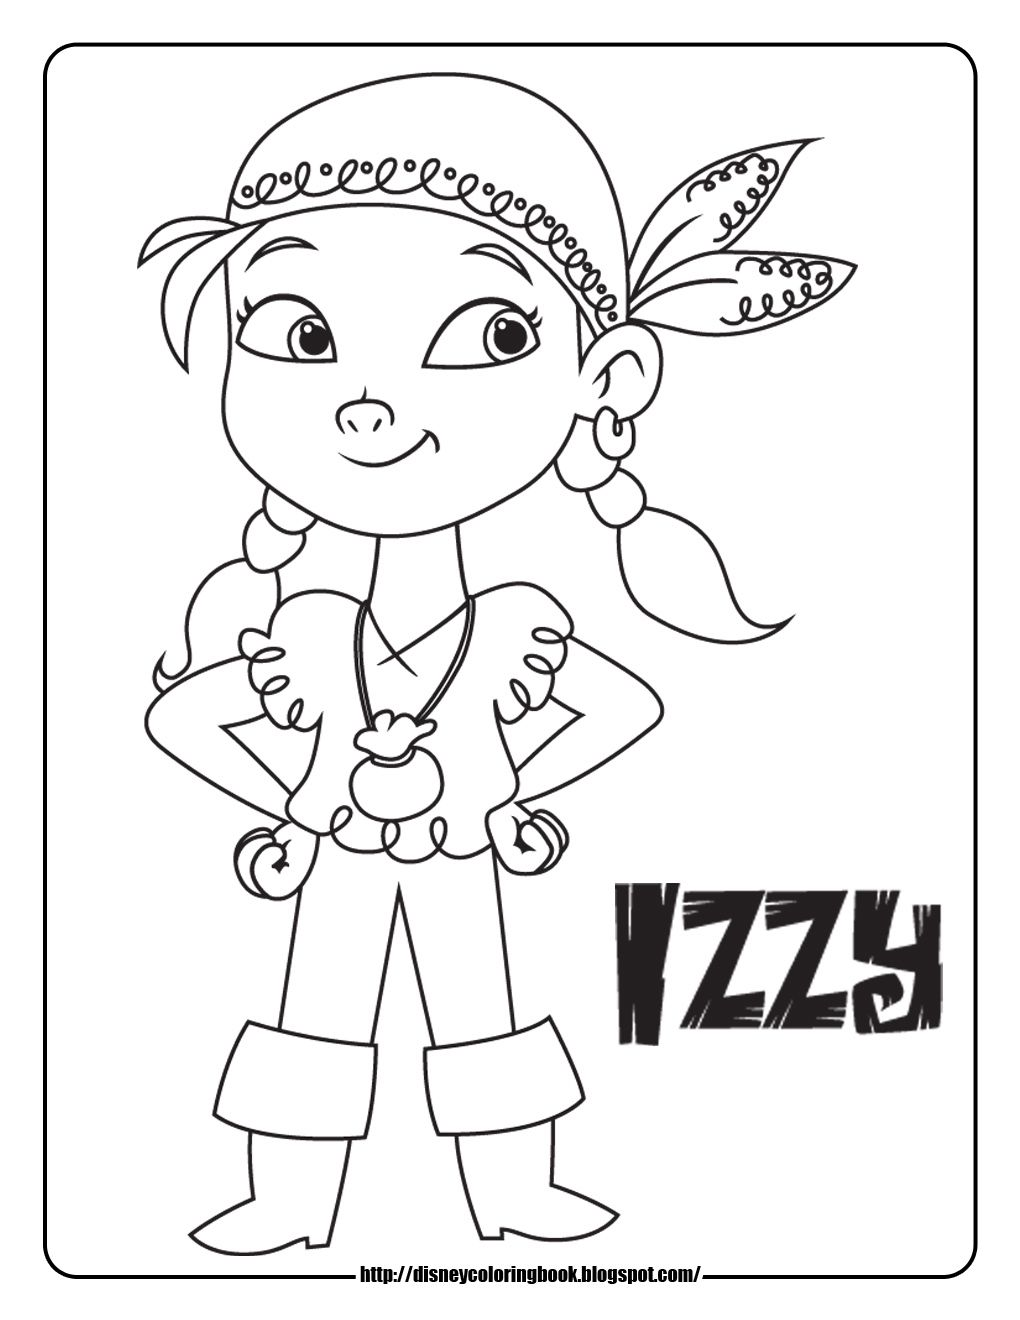 disney coloring pages and sheets for kids jake and the neverland